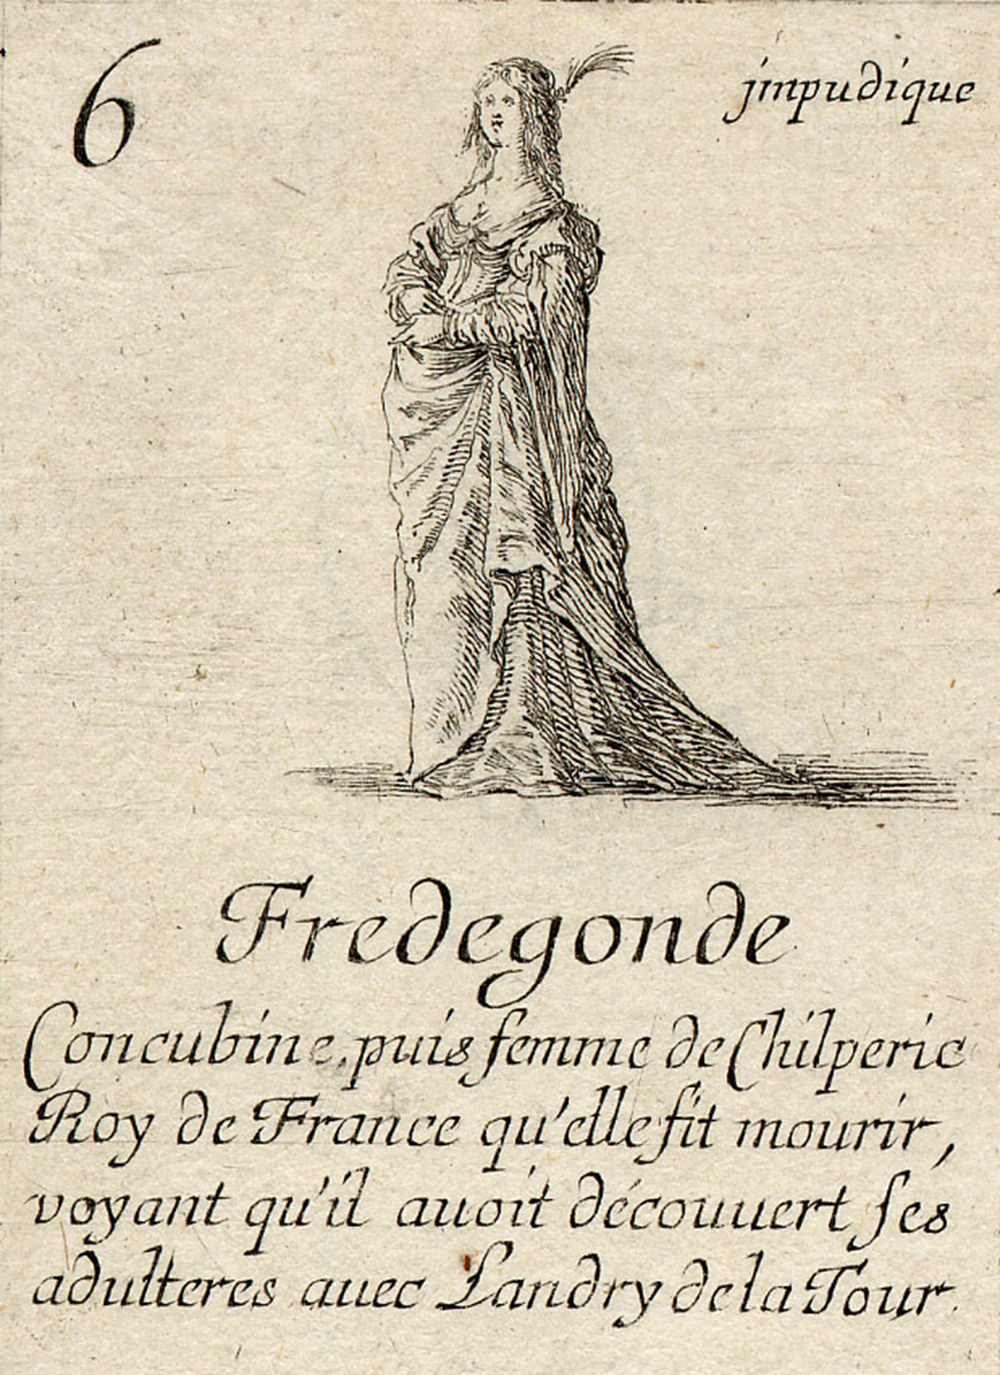 """Fredegund"" playing card, by Stefano della Bella, 1644. British Museum."